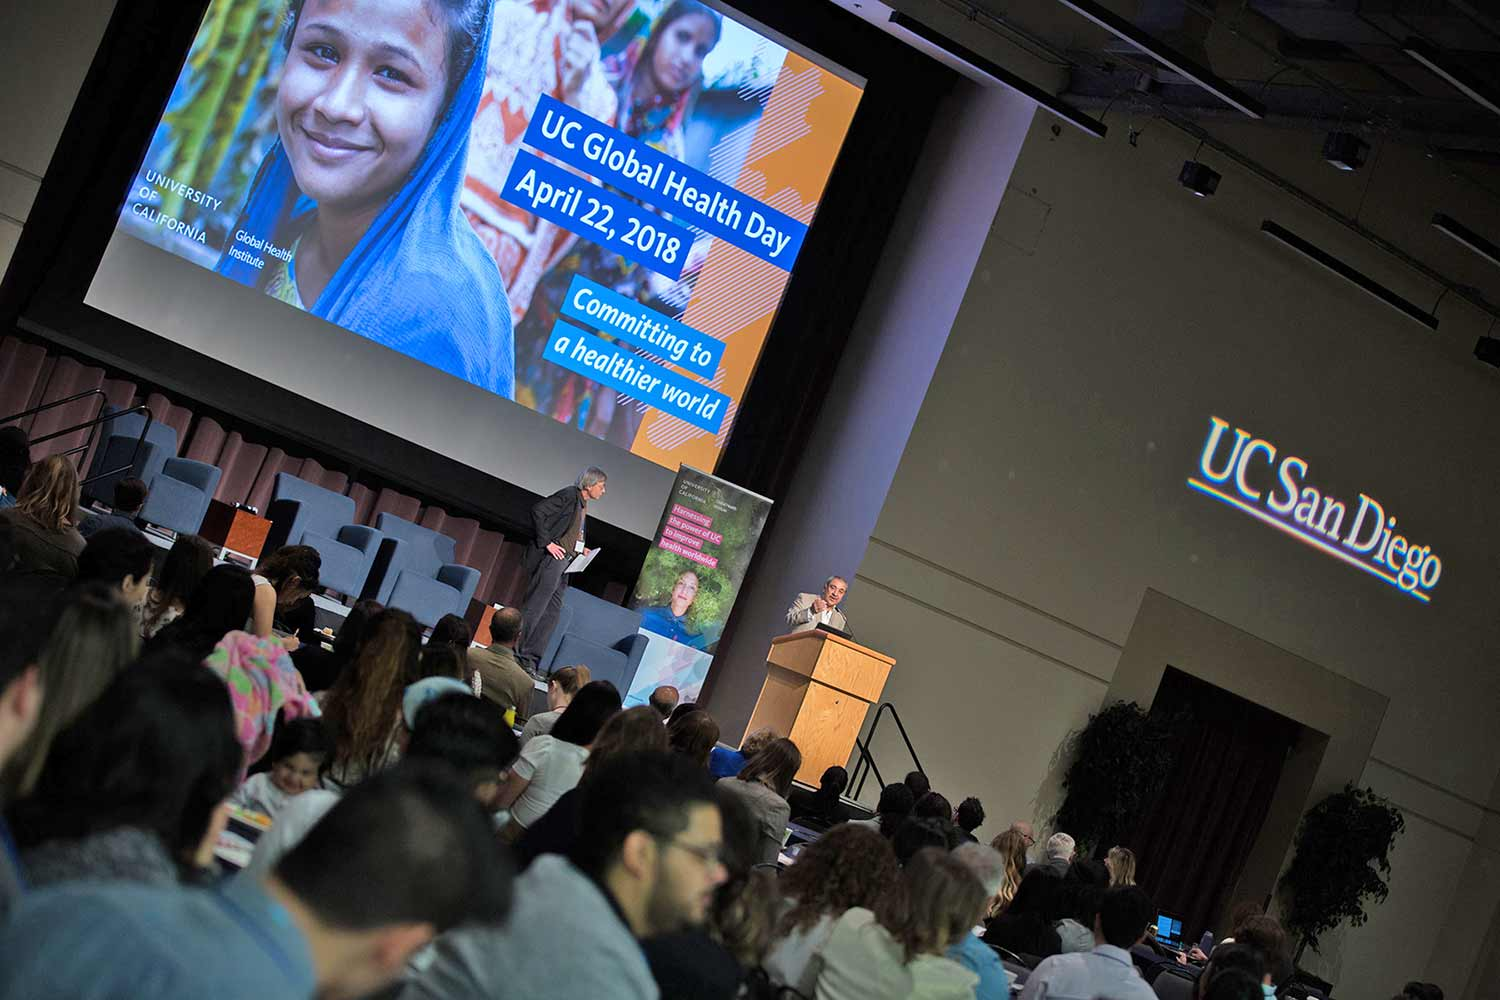 UC Global Health Day Event 2018